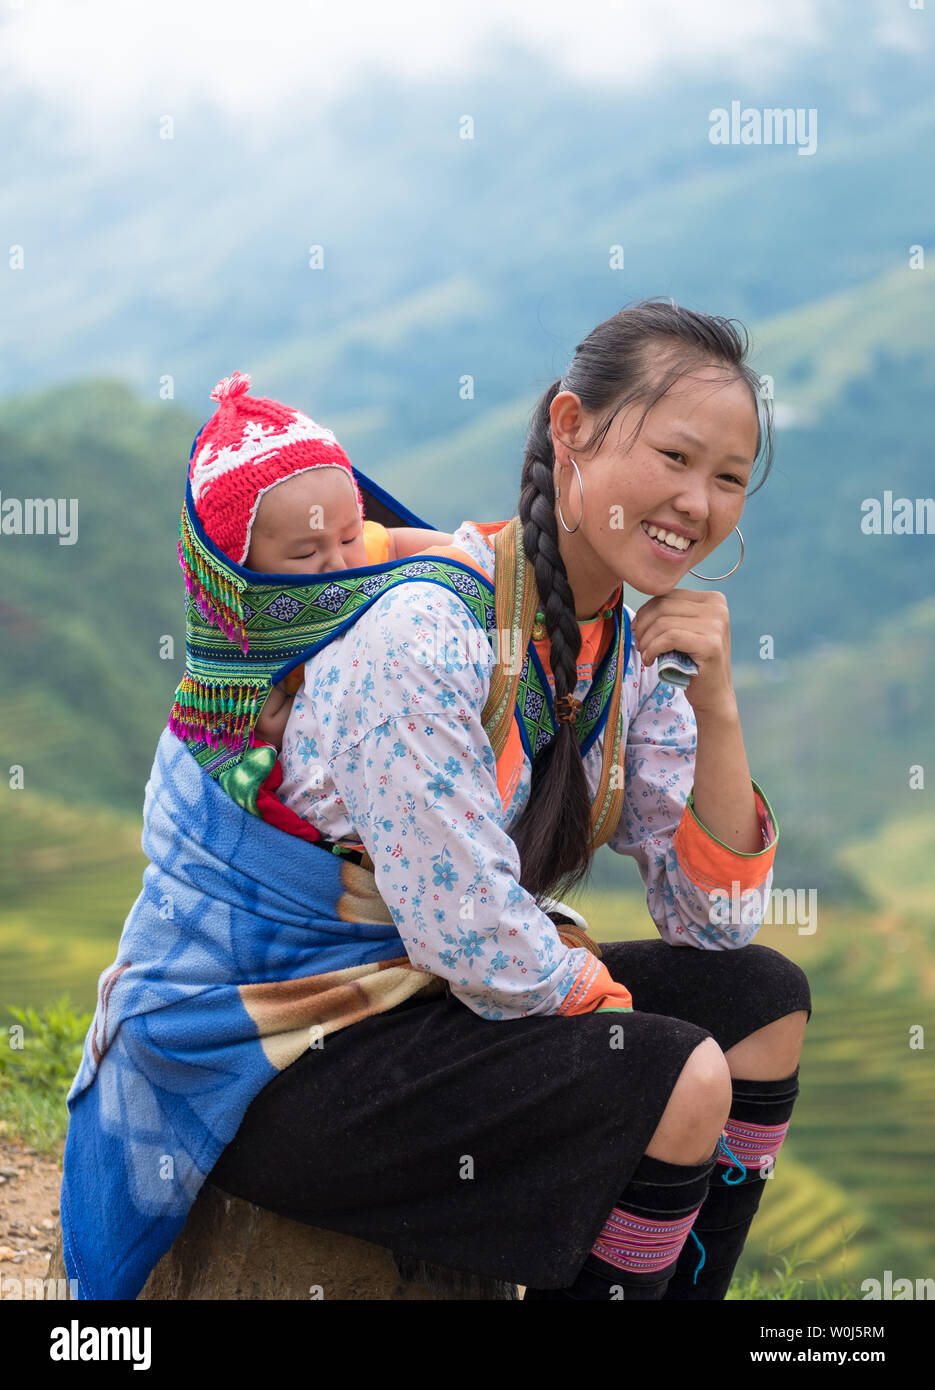 Sapa, Vietnam : Sep 08 2017 : Young mother tribe carrying son baby with smiling and happiness on rice field background - Stock Image